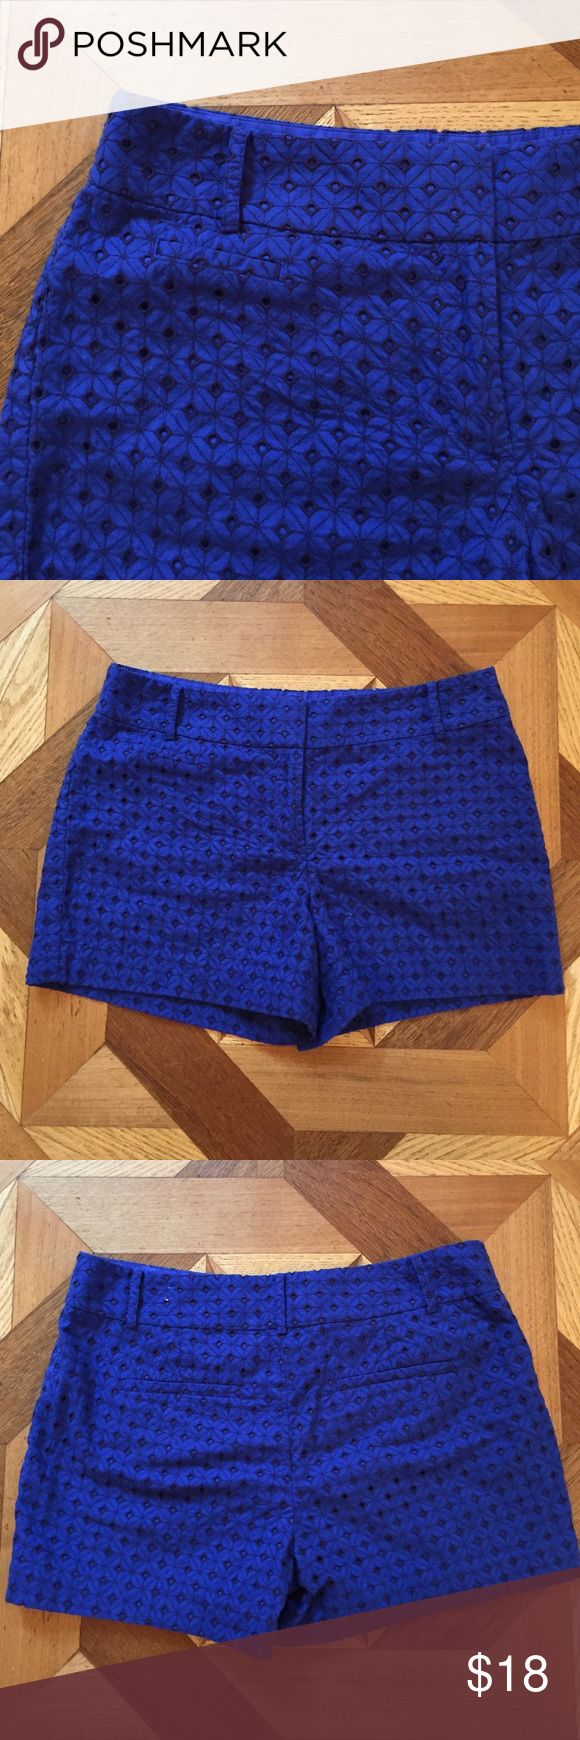 LOFT blue eyelet shorts EUC. Wore a few times. 100% cotton. LOFT Shorts